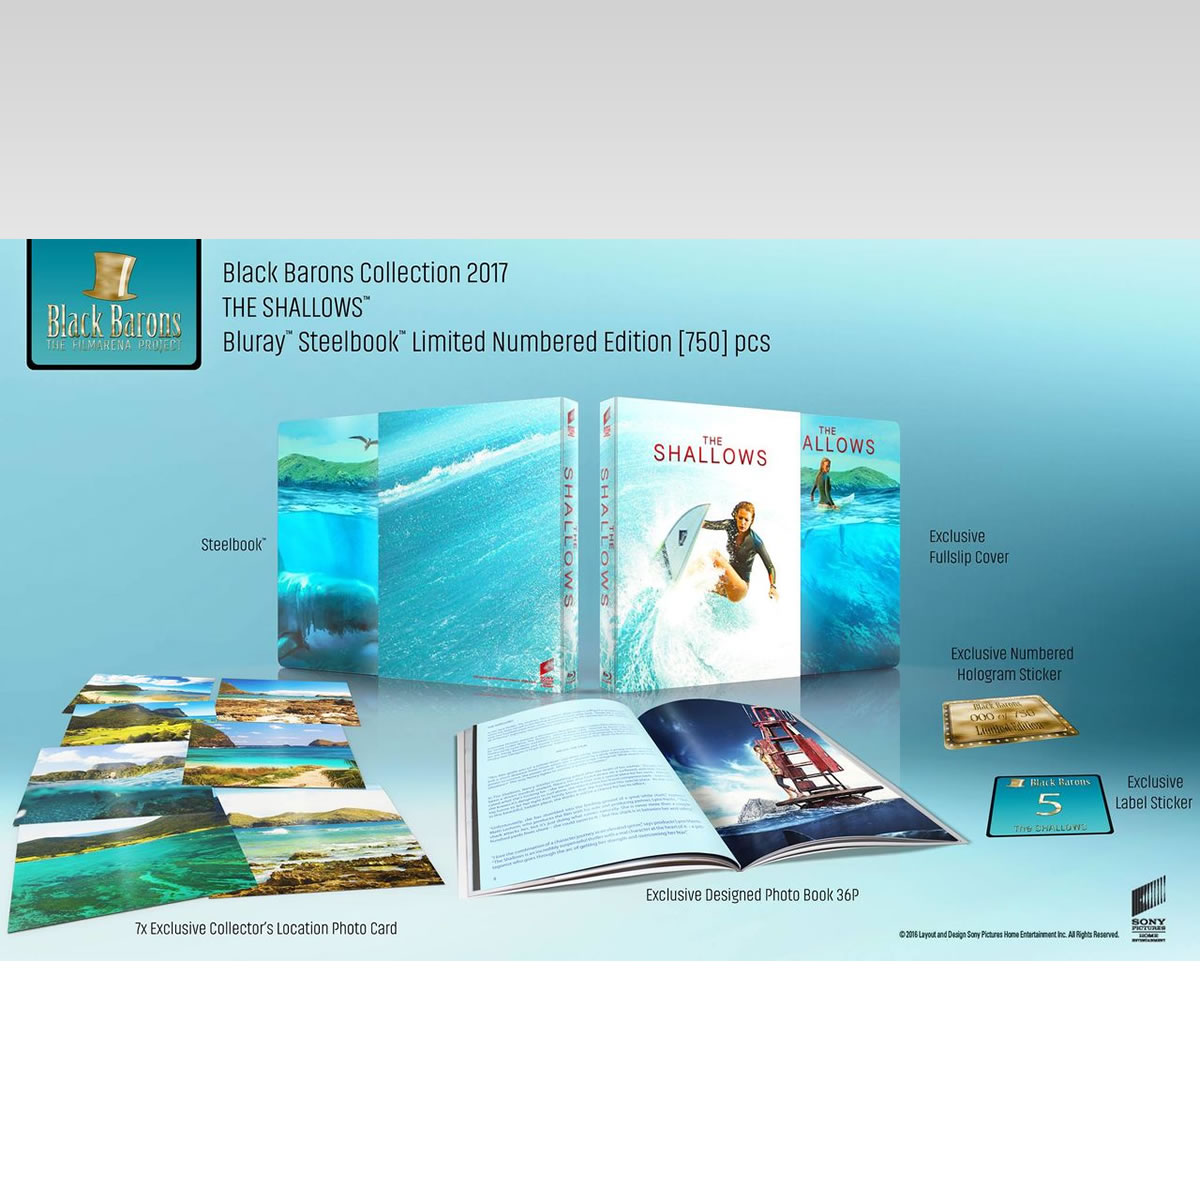 THE SHALLOWS - ΣΕ ΡΗΧΑ ΝΕΡΑ Limited Collector's Numbered Edition Steelbook + PHOTOBOOK (BLU-RAY)